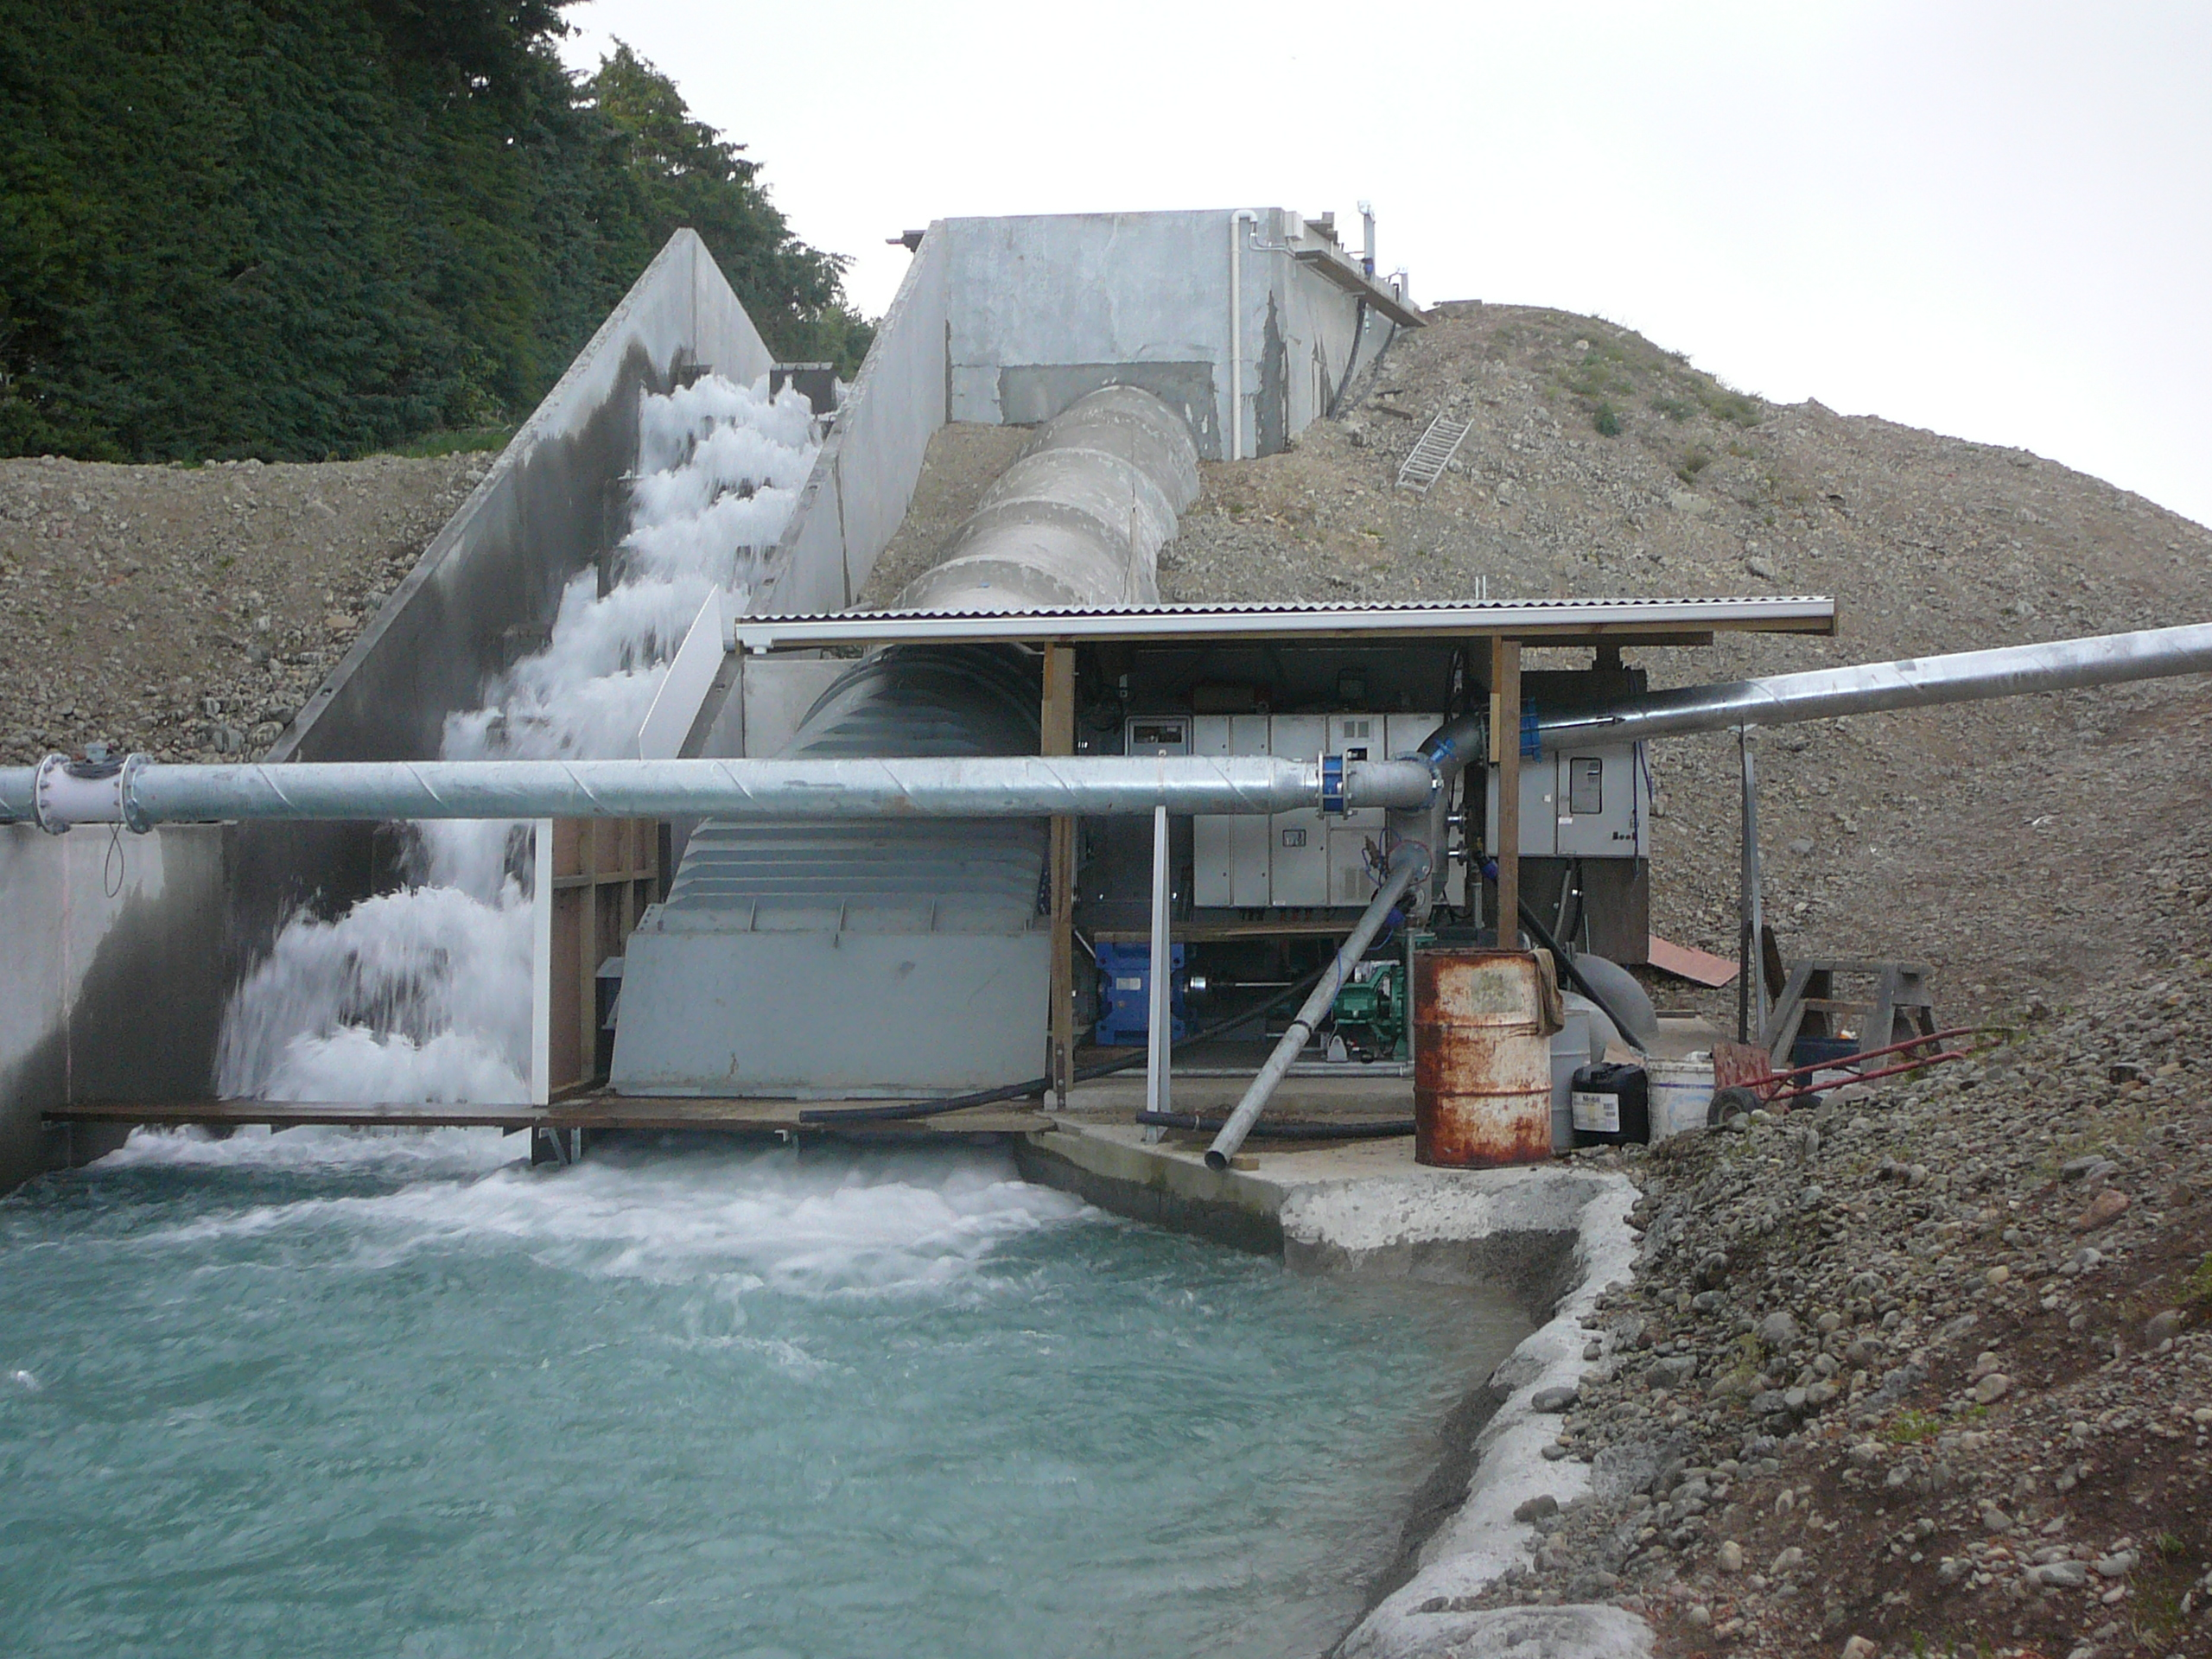 Hydropower, water turbine, pumping, crossflow, generation, hinds, rangitata, ealing pastures, rotor, alternator, pump, irrigation